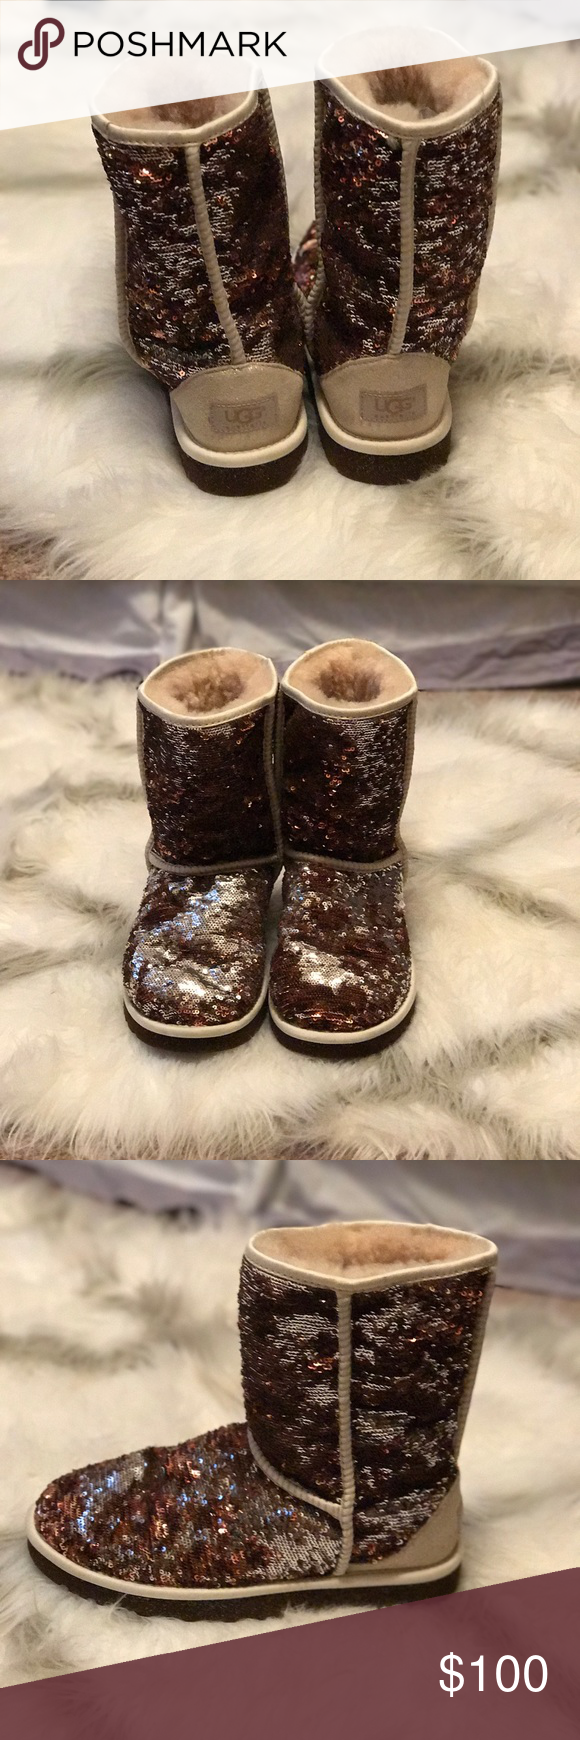 Brown/silver sparkly authentic size 8 uggs!